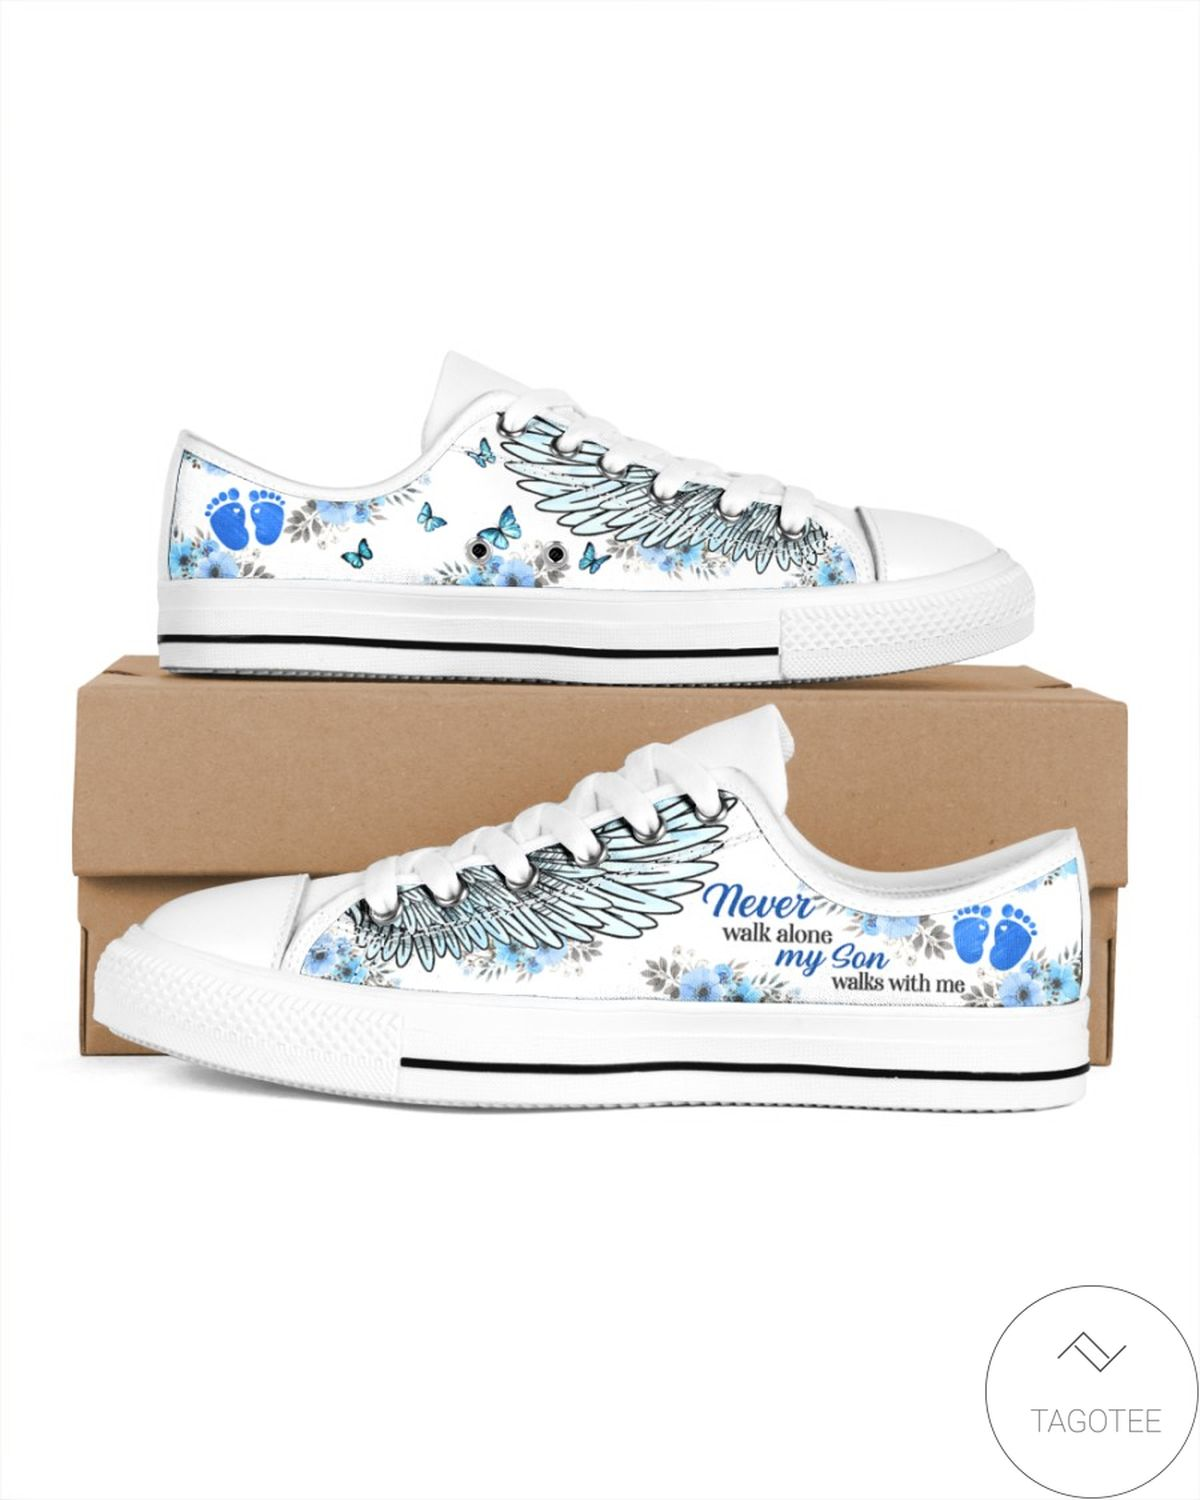 All Over Print My Son Walks With Me Men's Low Top Shoes